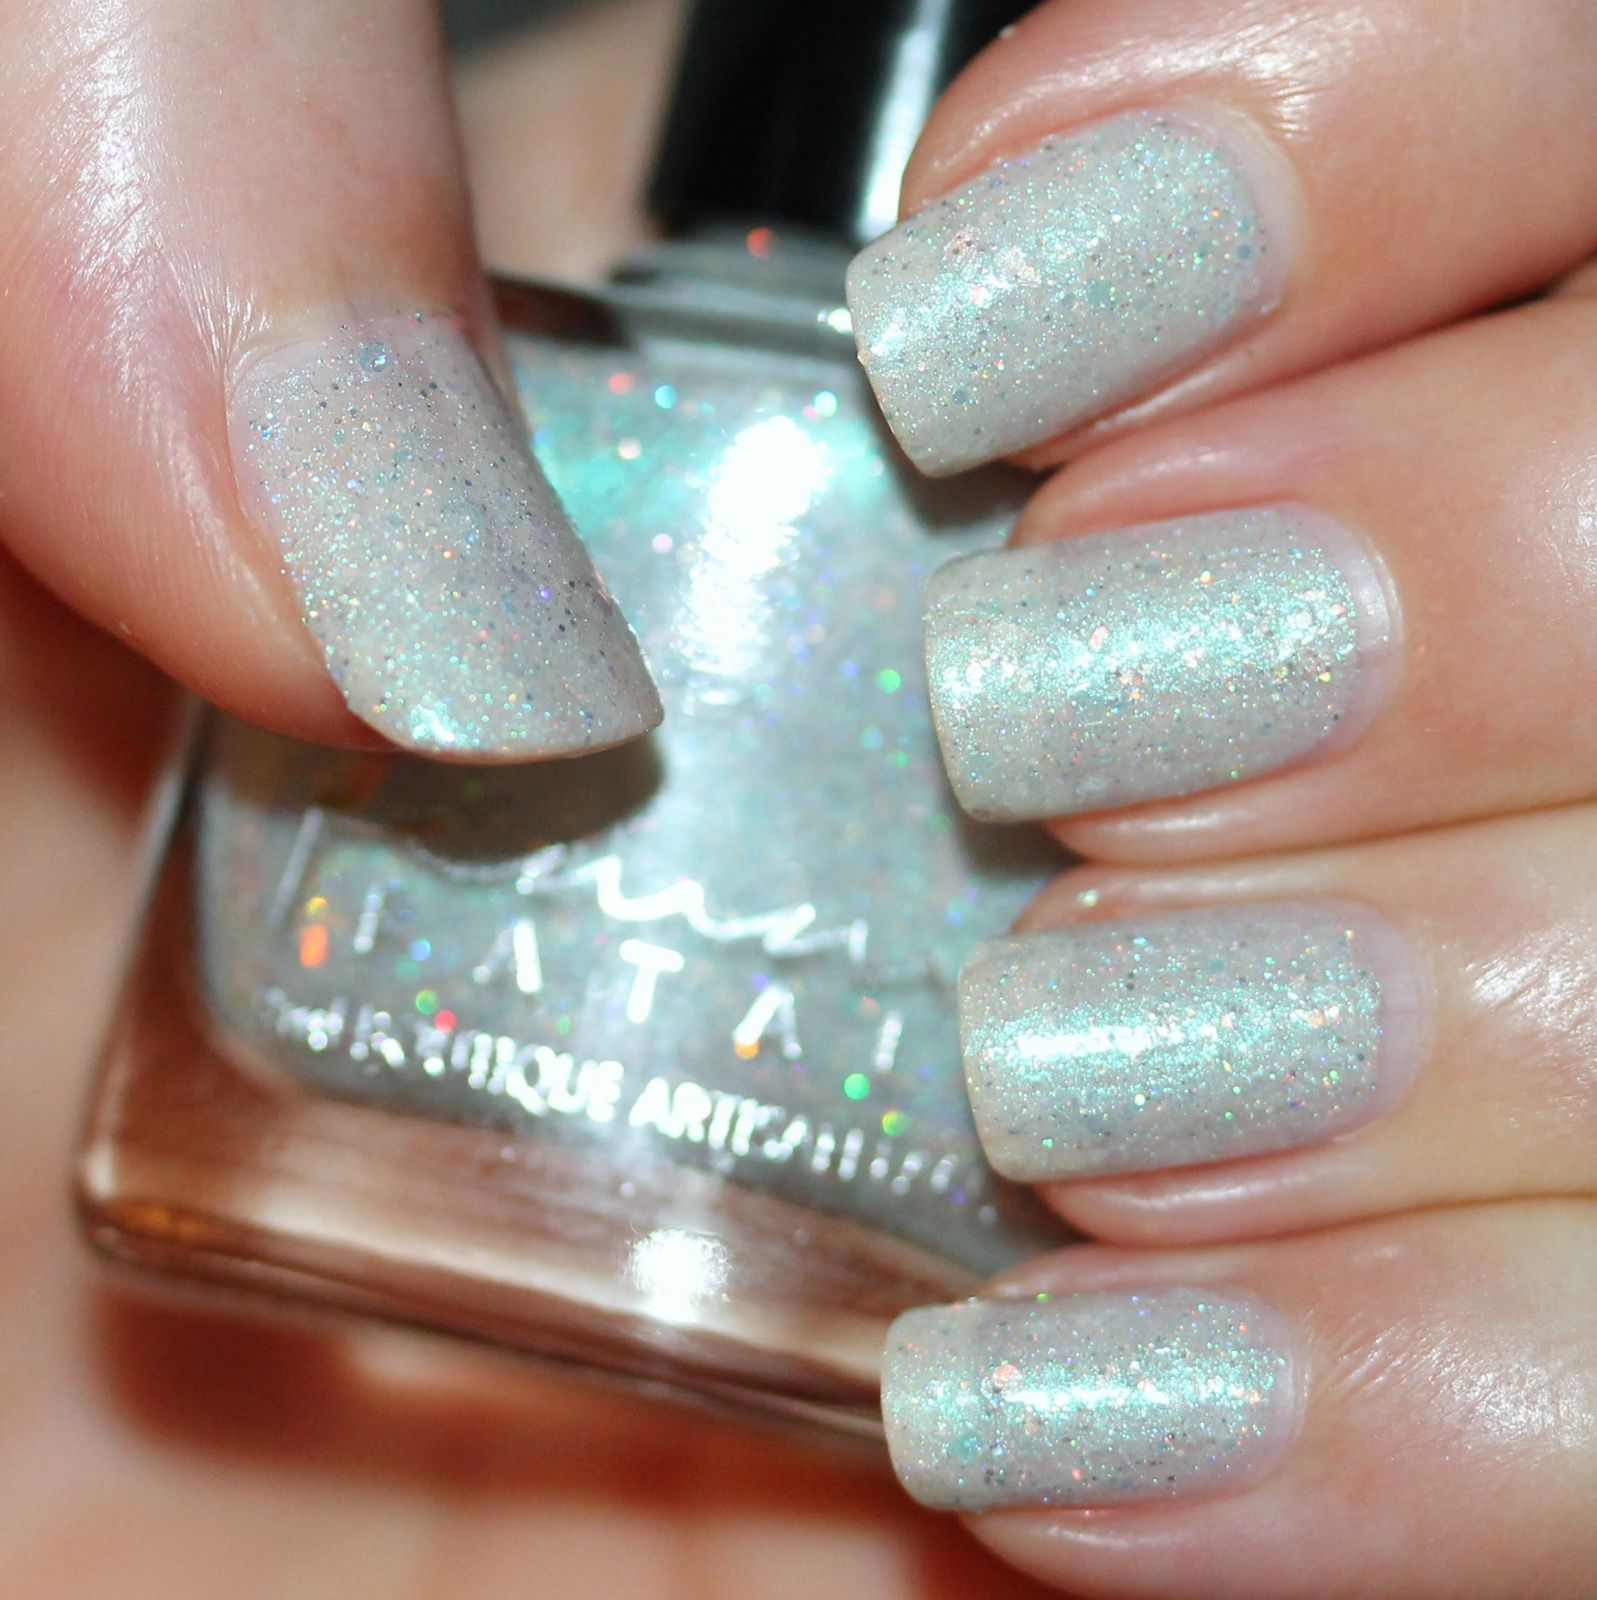 Femme Fatale Cosmetics Glimmerbreath (3 coats, no top coat)